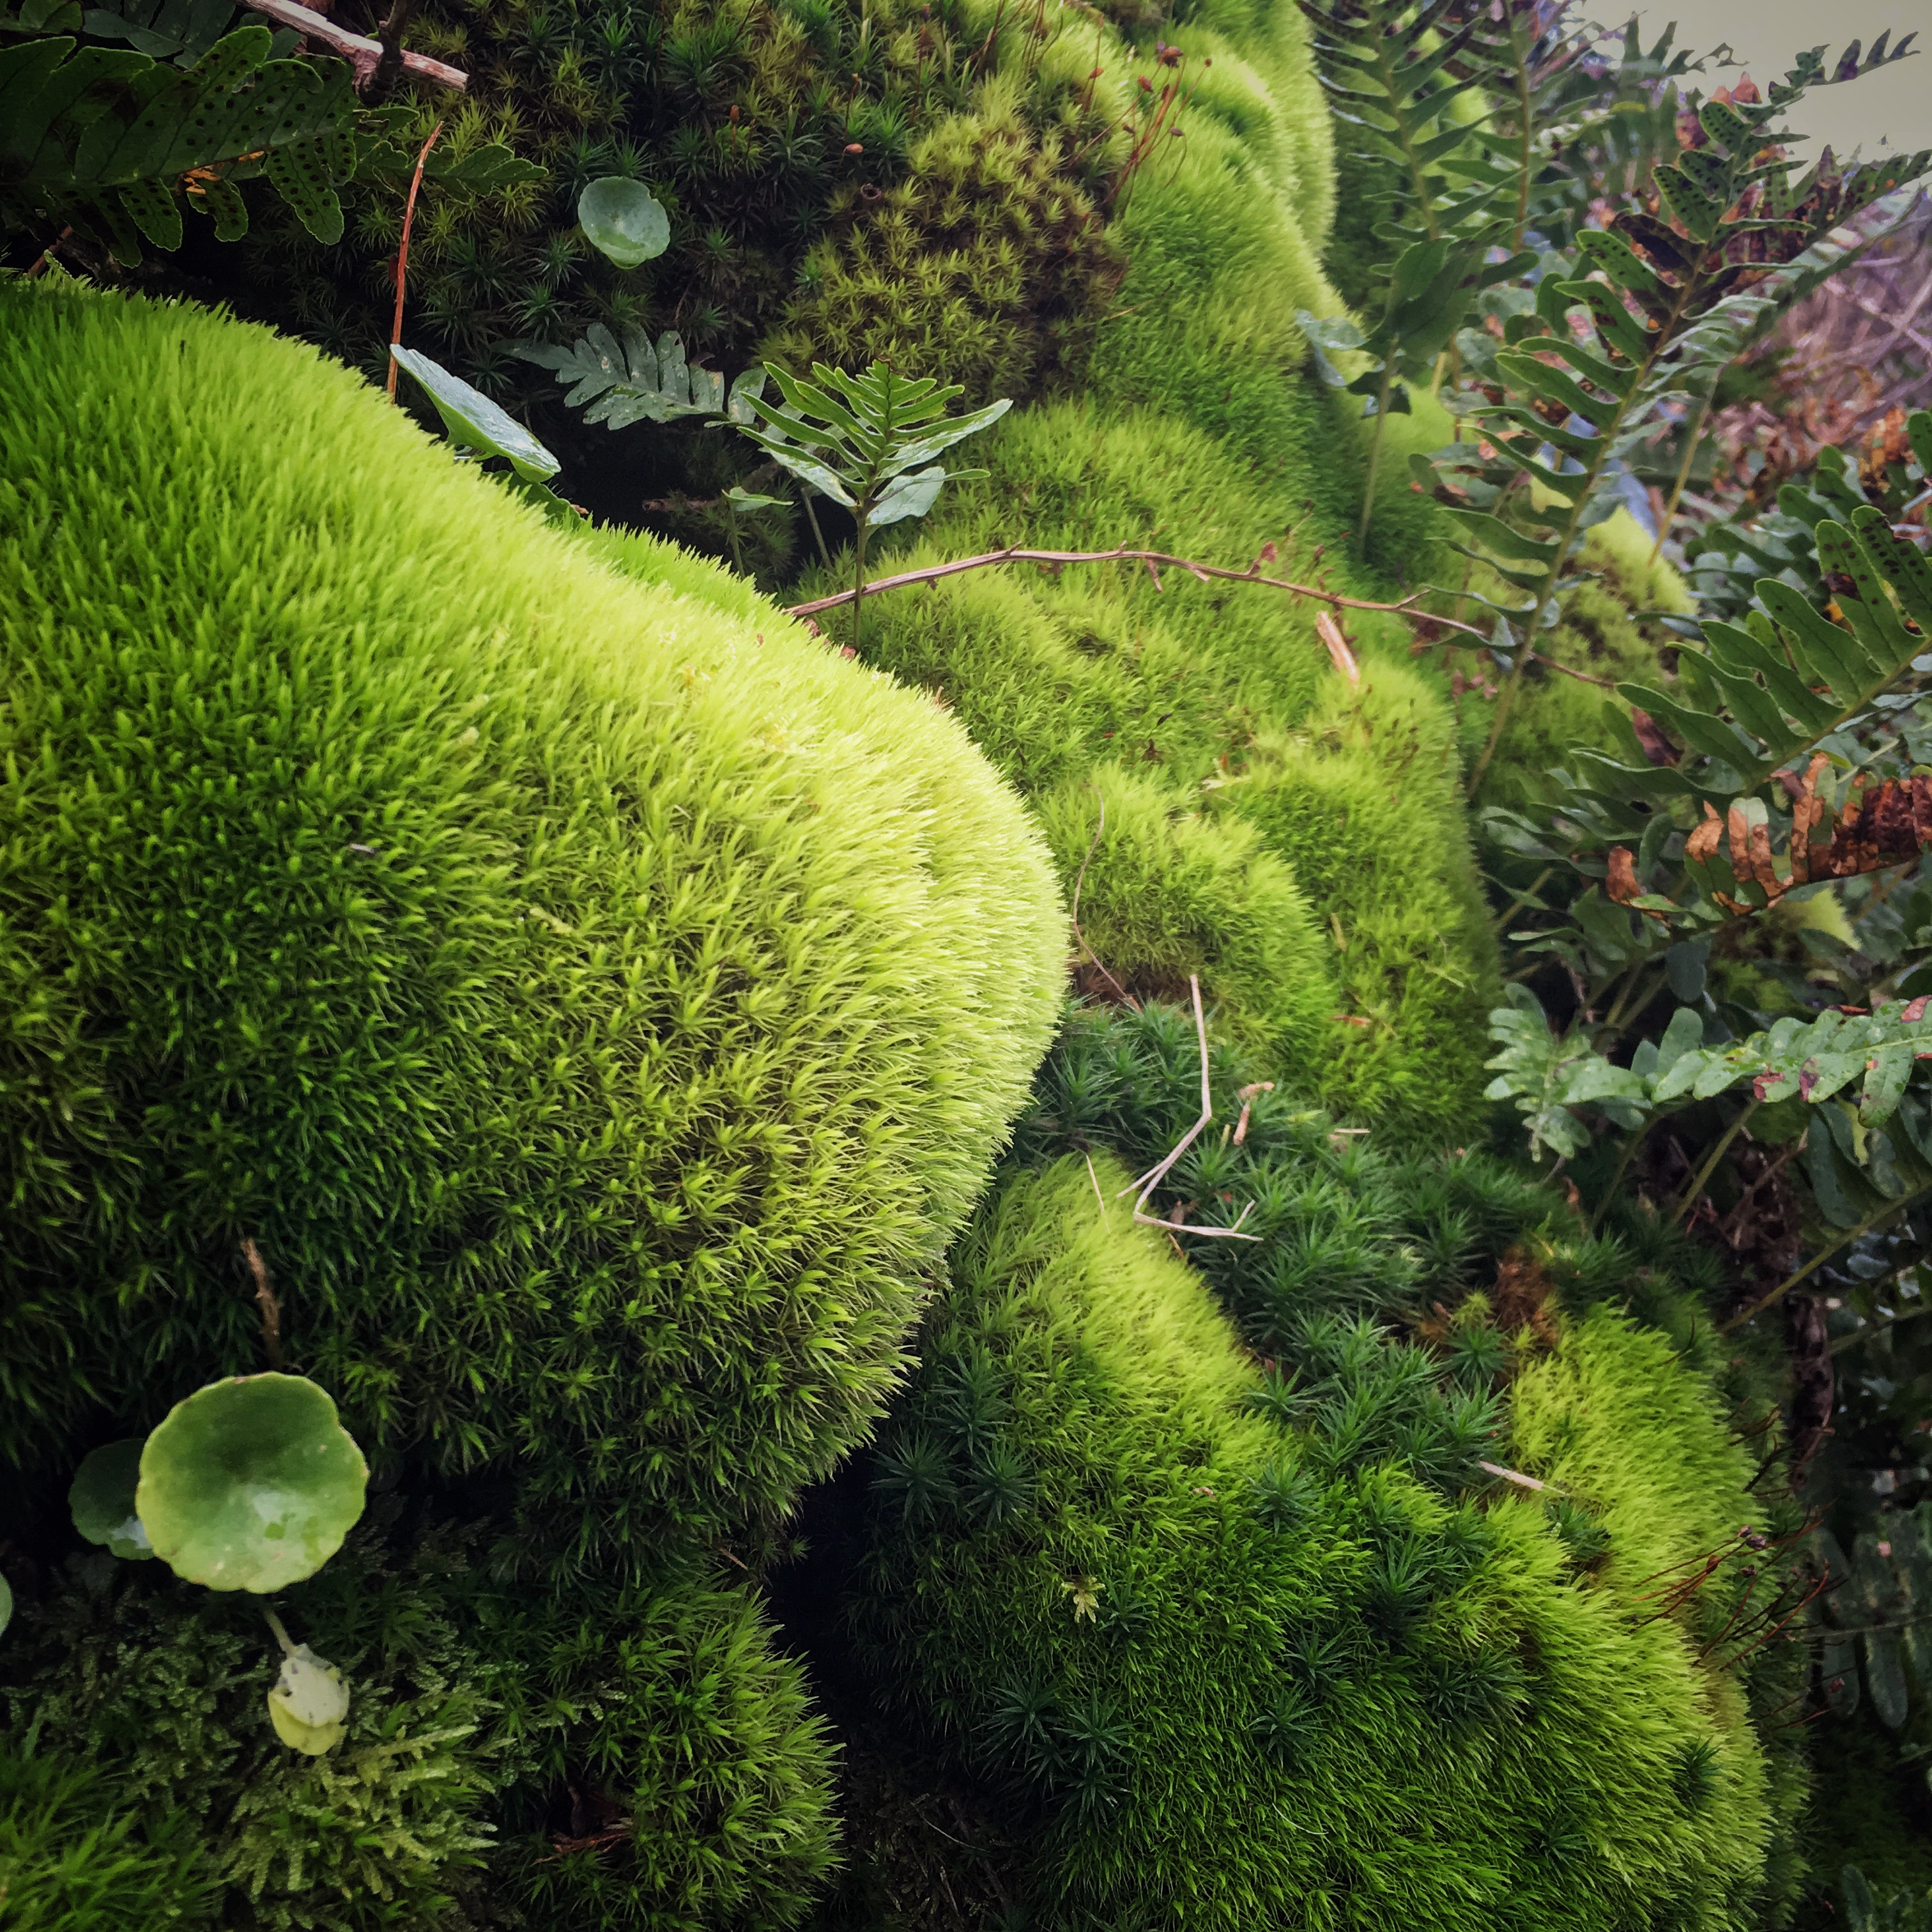 Mossy Boulders and Pennywort